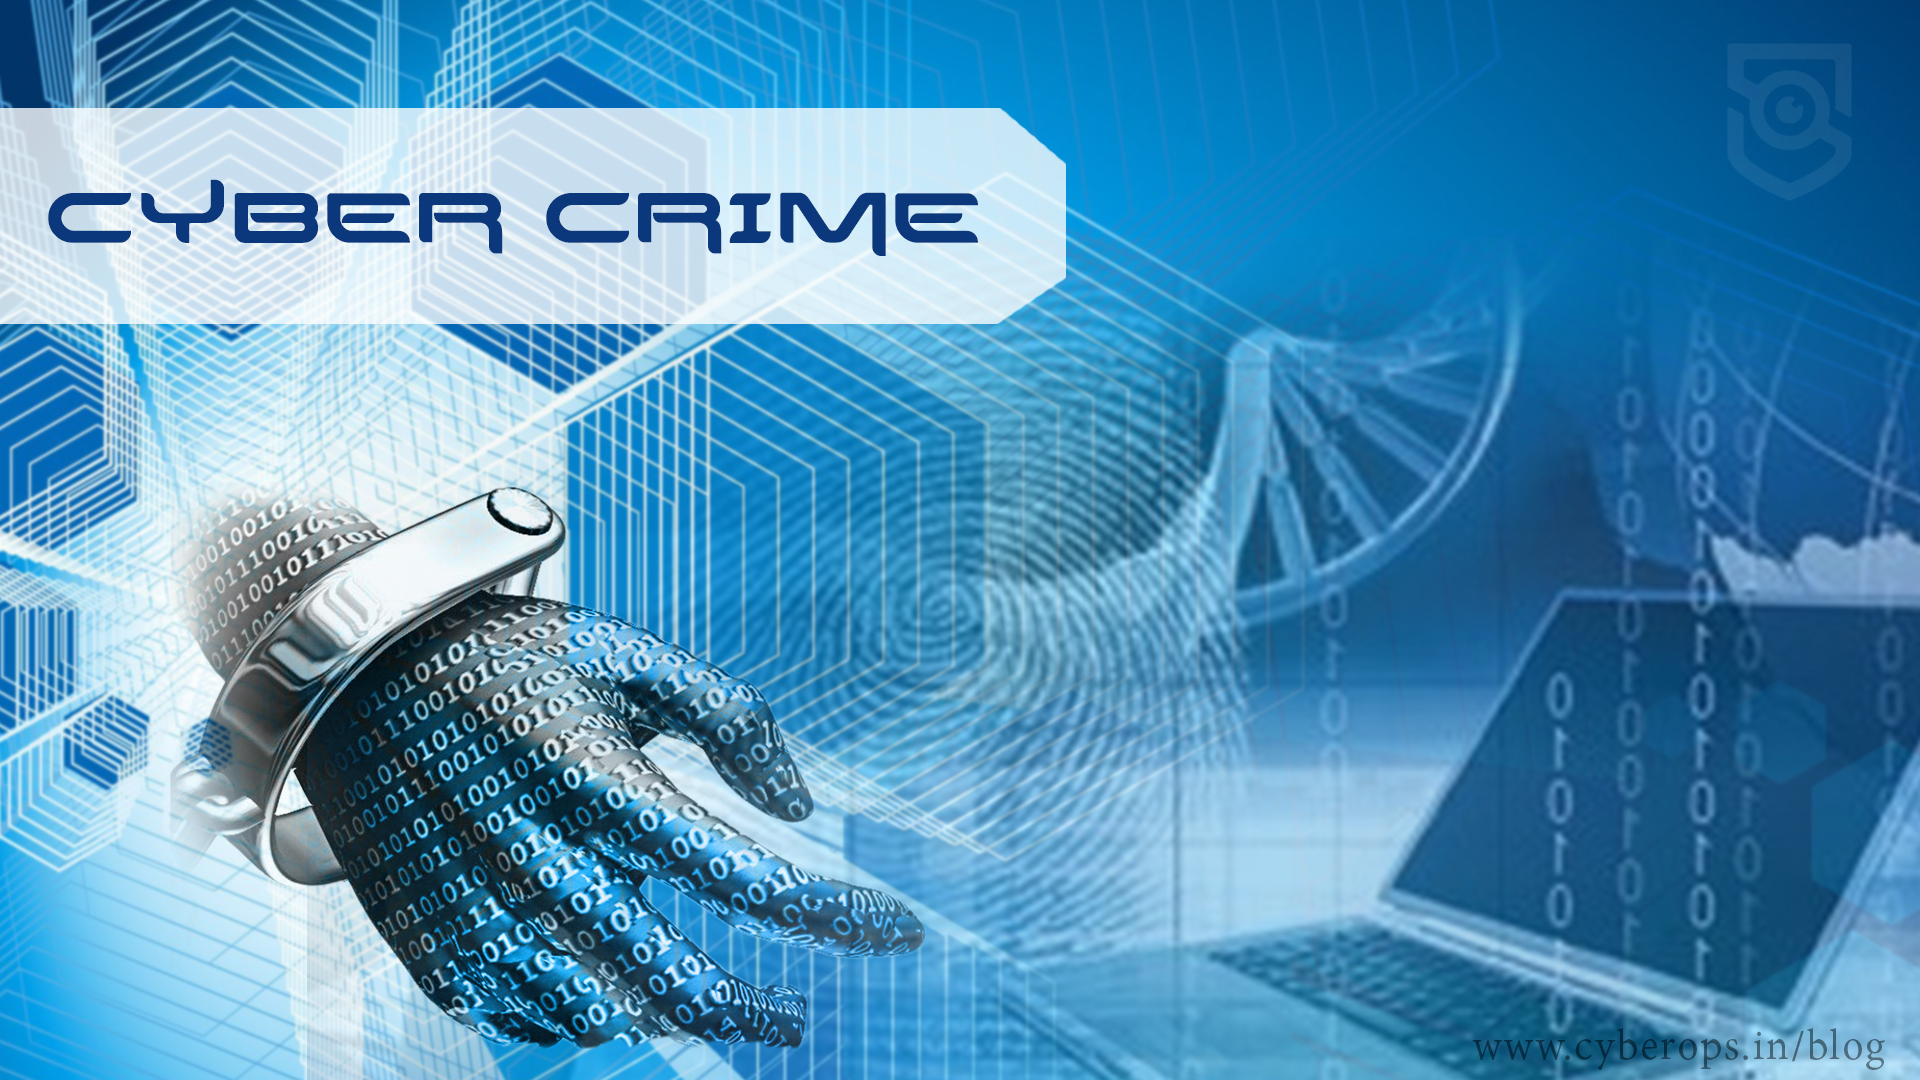 You Should Know About The Top 10 Cyber Crimes And Data